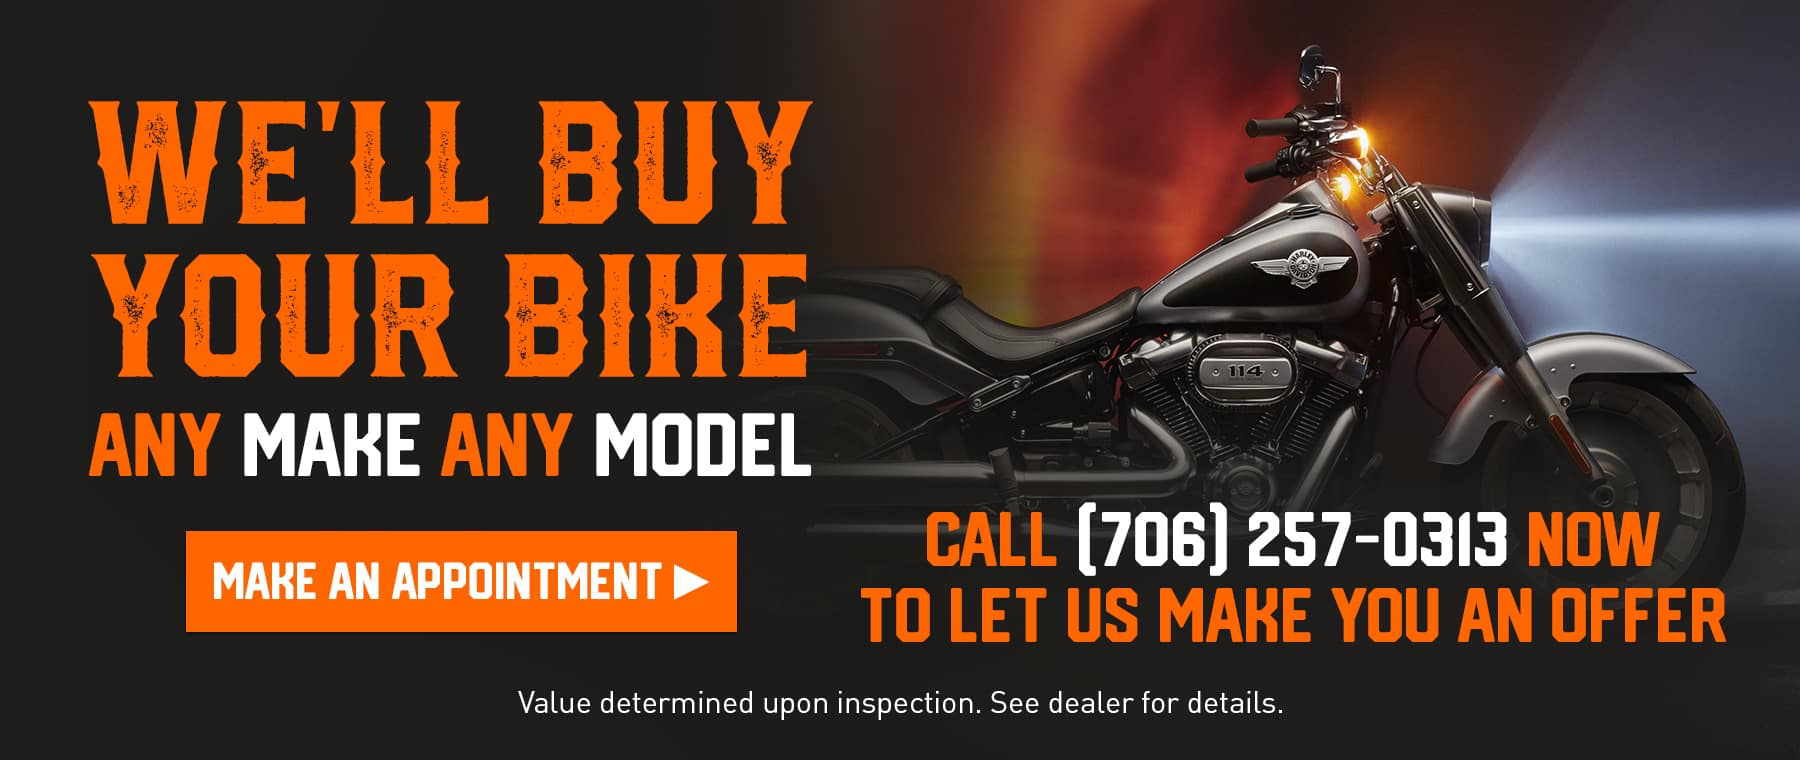 sell-us-your-bike_trade-wb